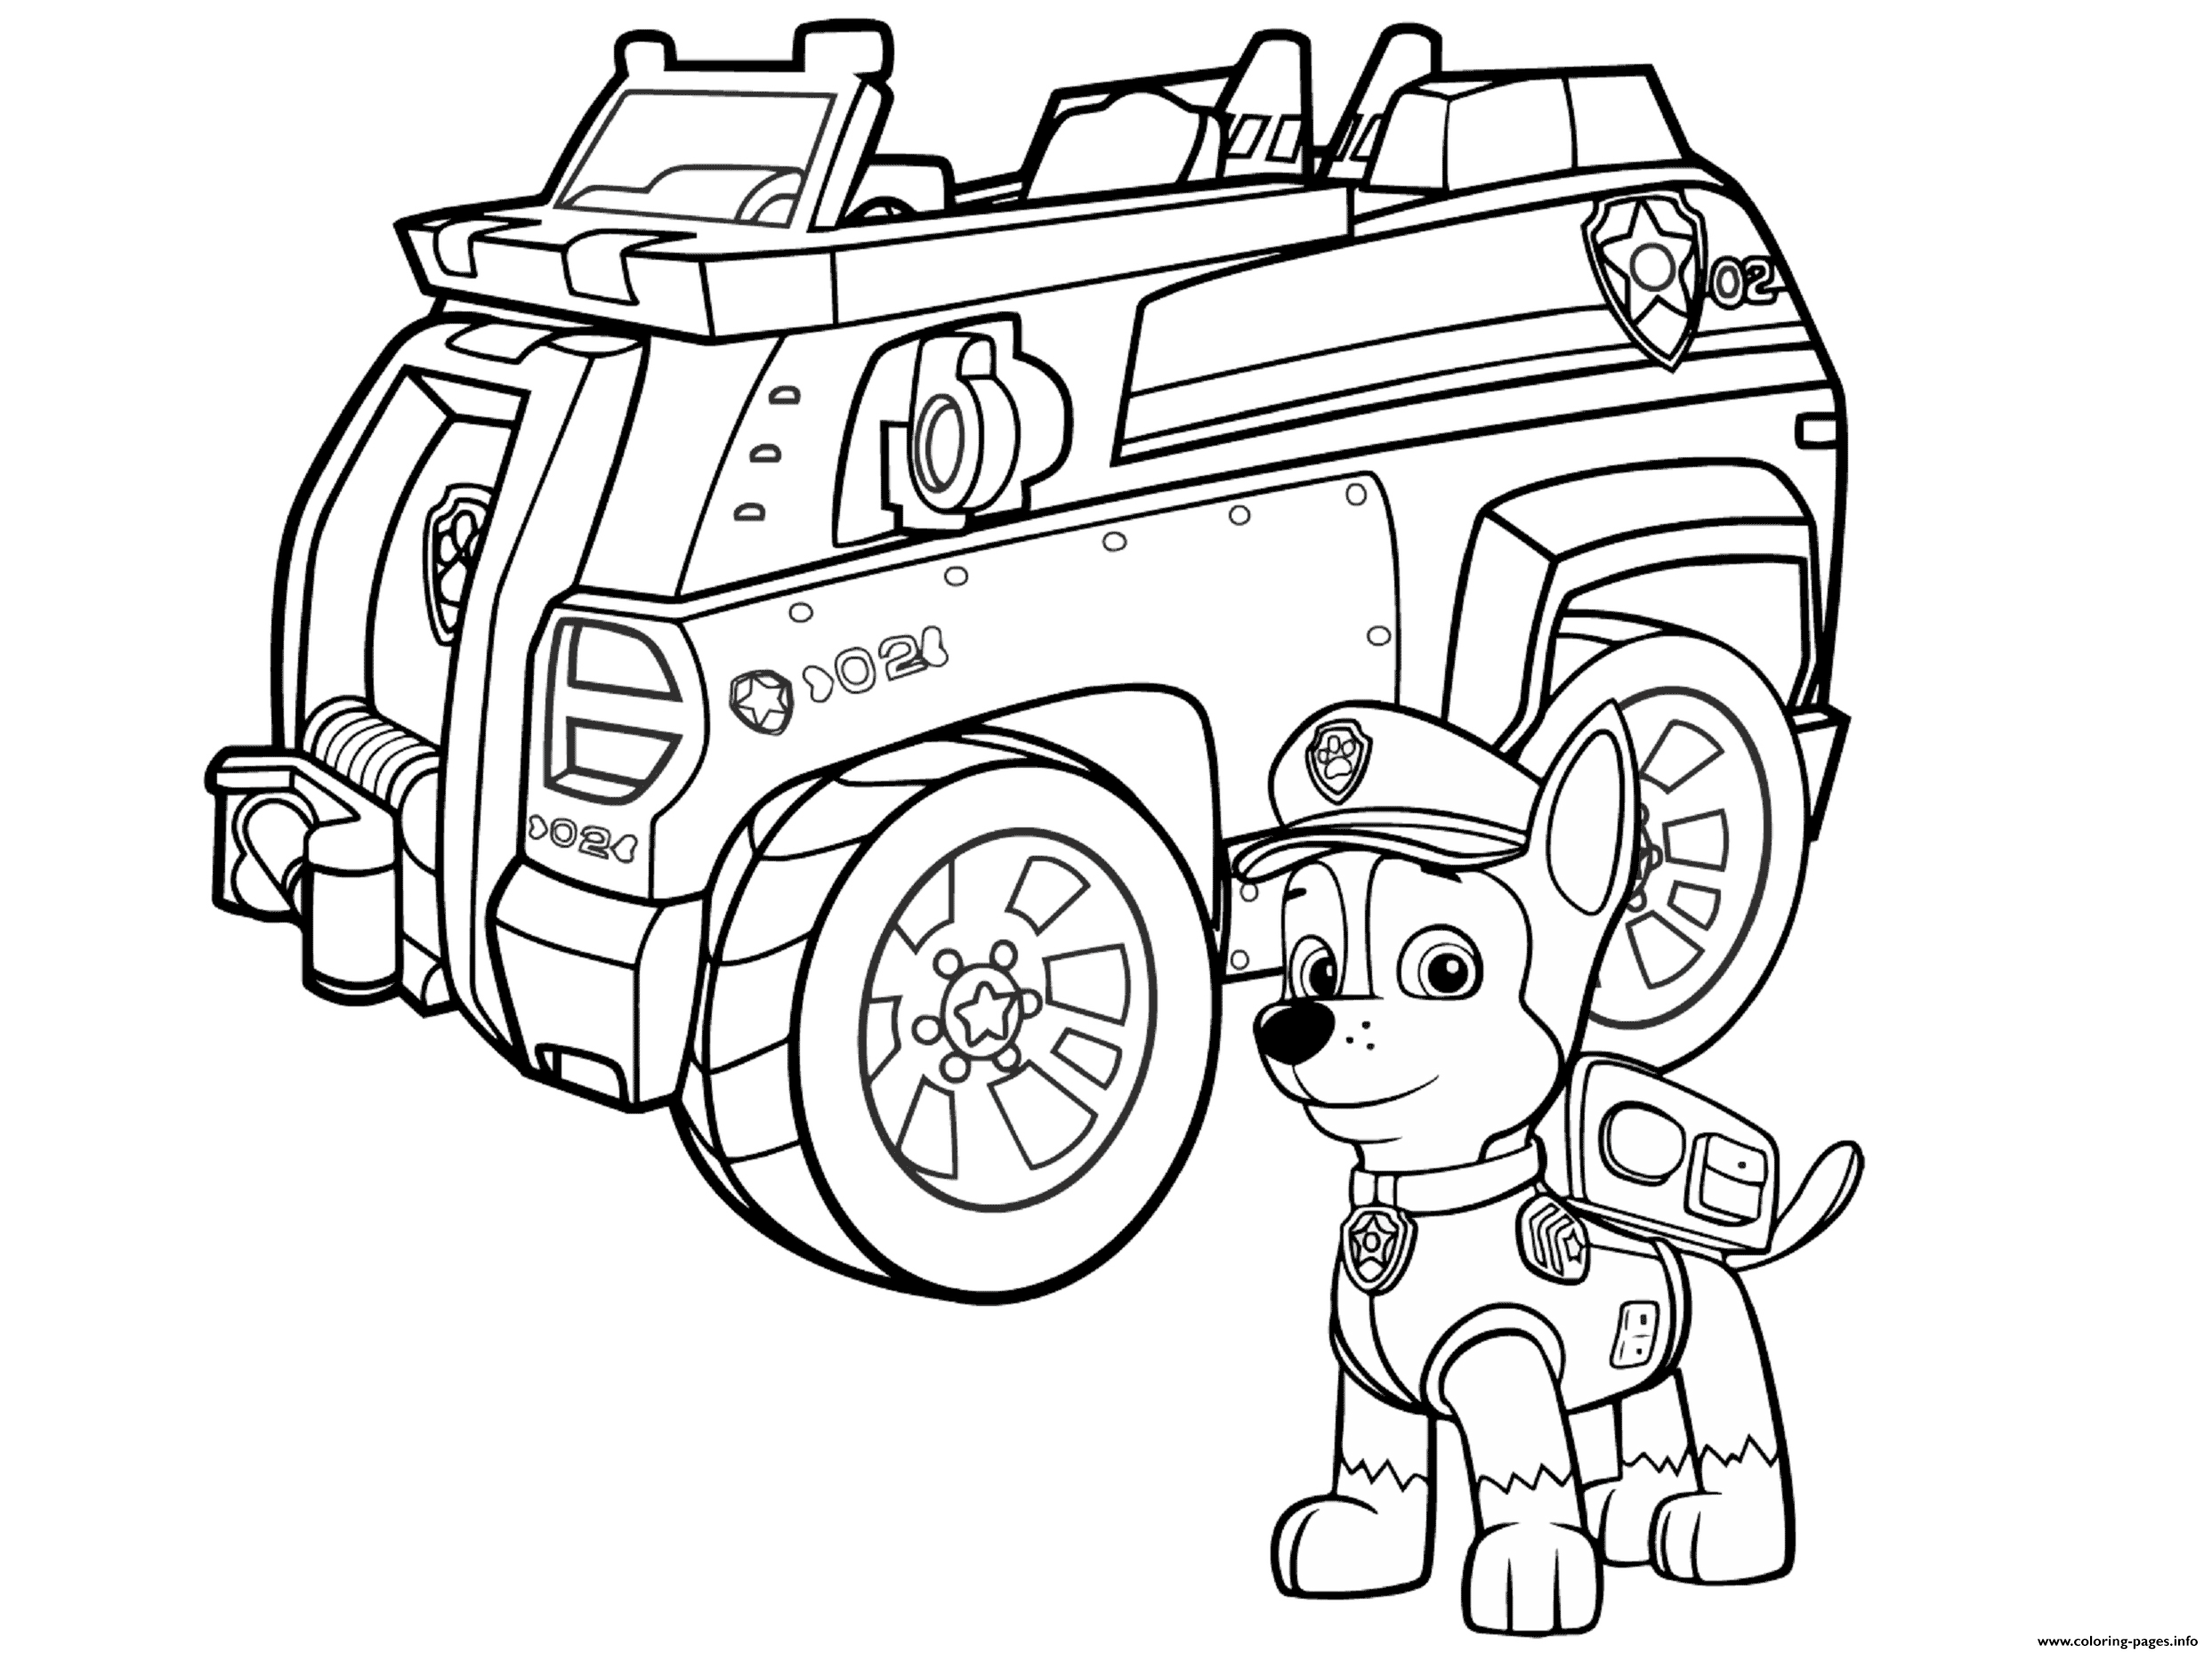 Paw Patrol Chase Police Car coloring pages